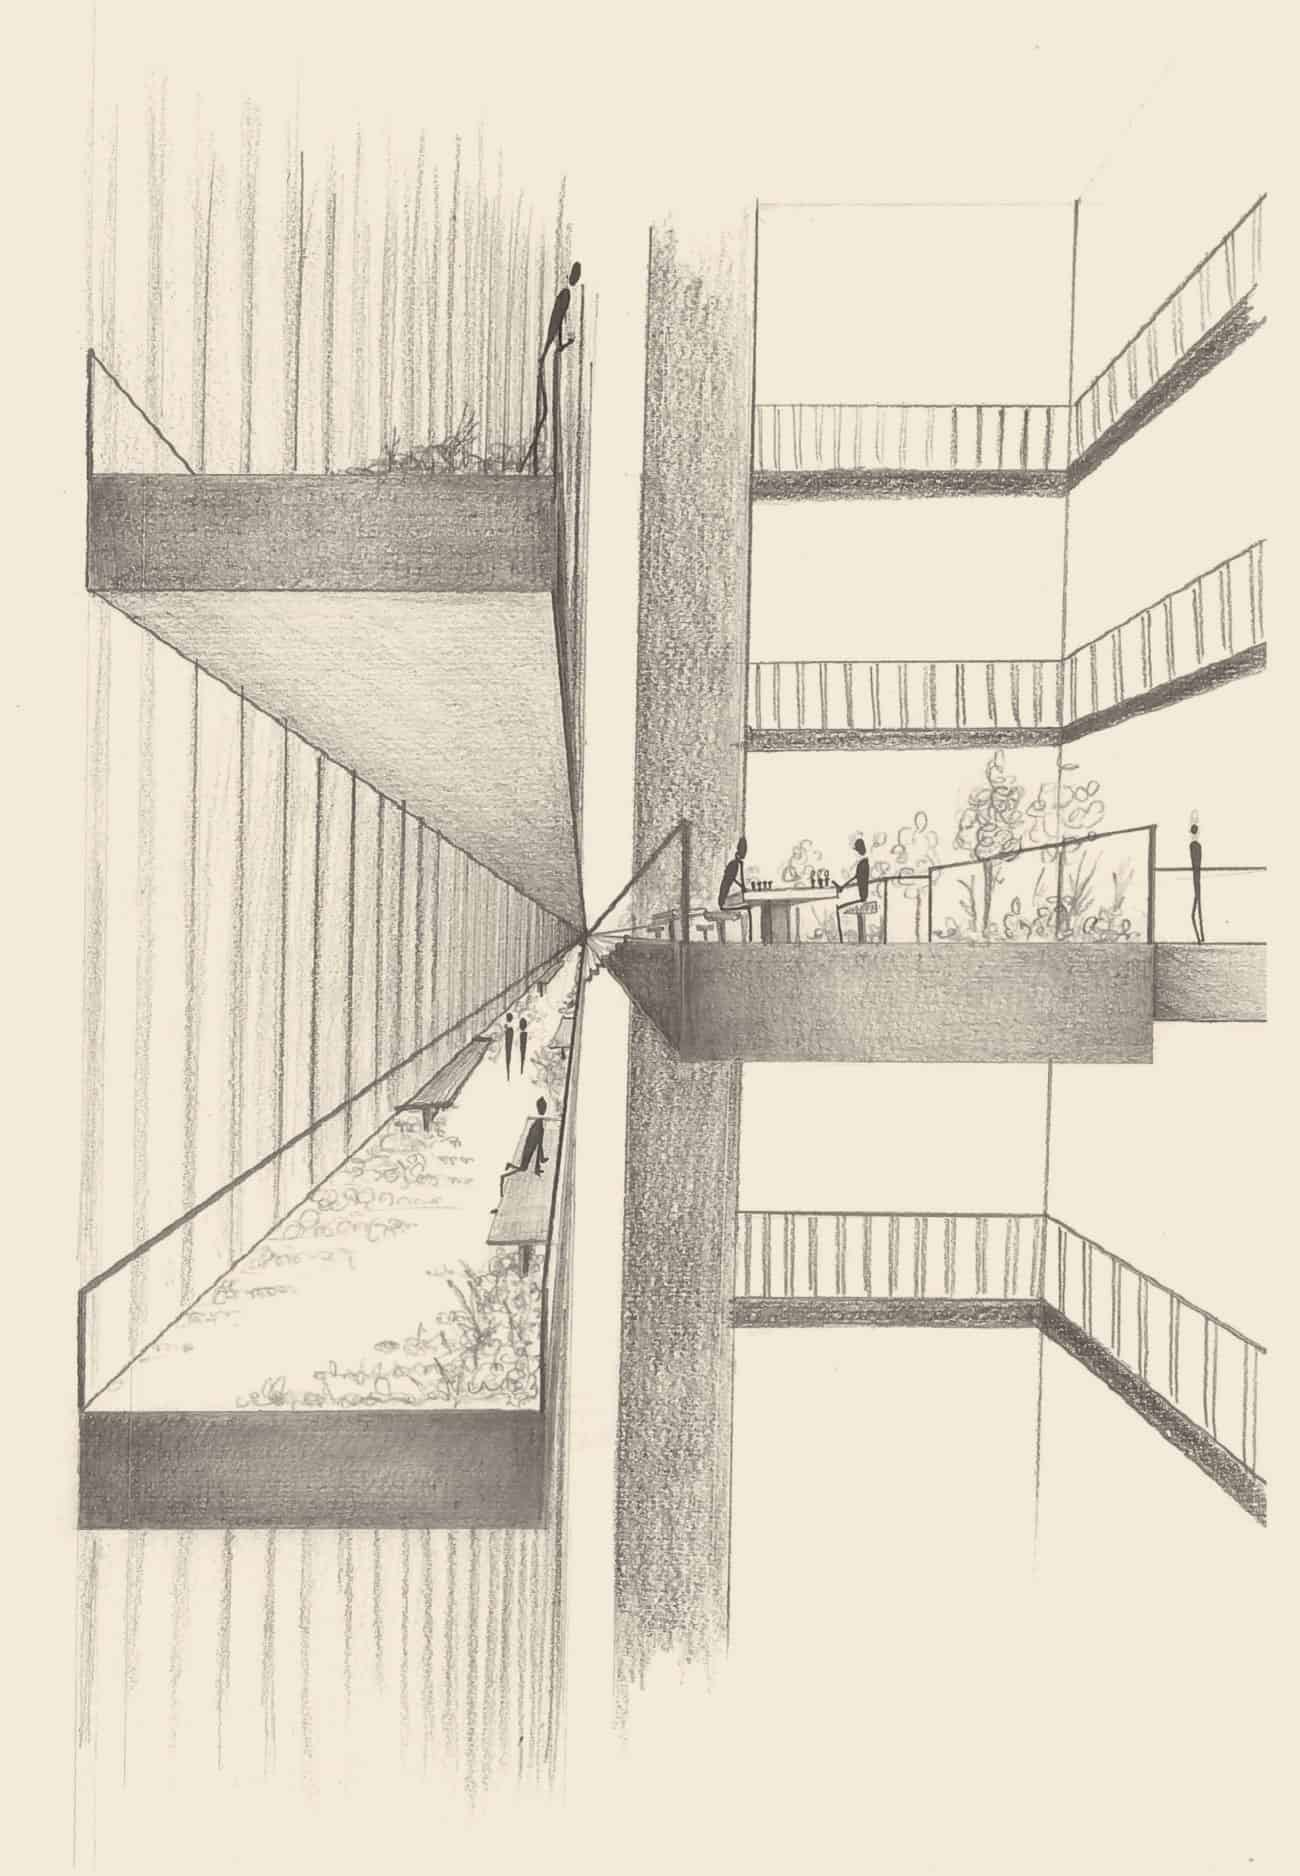 An introduction to the Corrala - Student Porjects | IE School of Architecture and Design